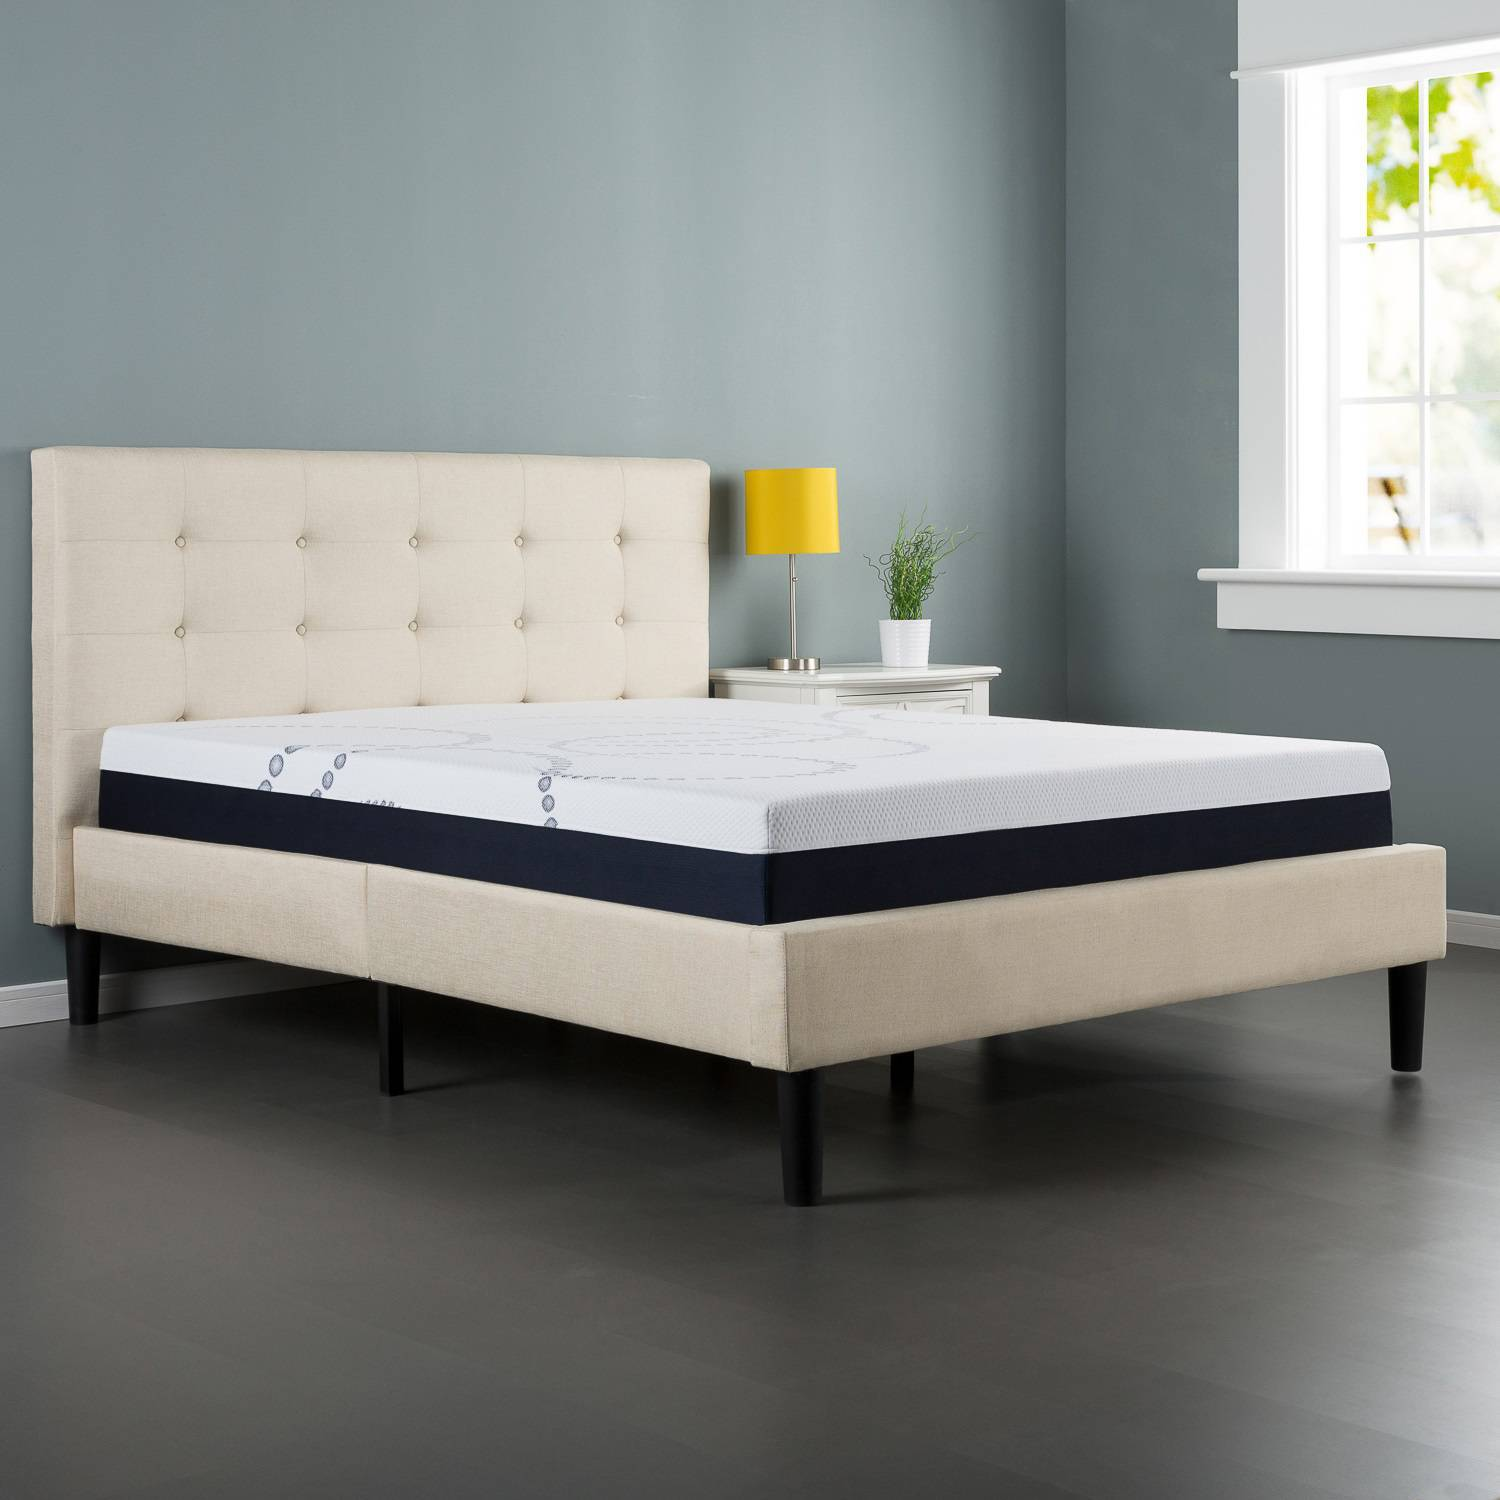 Zinus Upholstered On Tufted Platform Bed With Wooden Slats Multiple Sizes